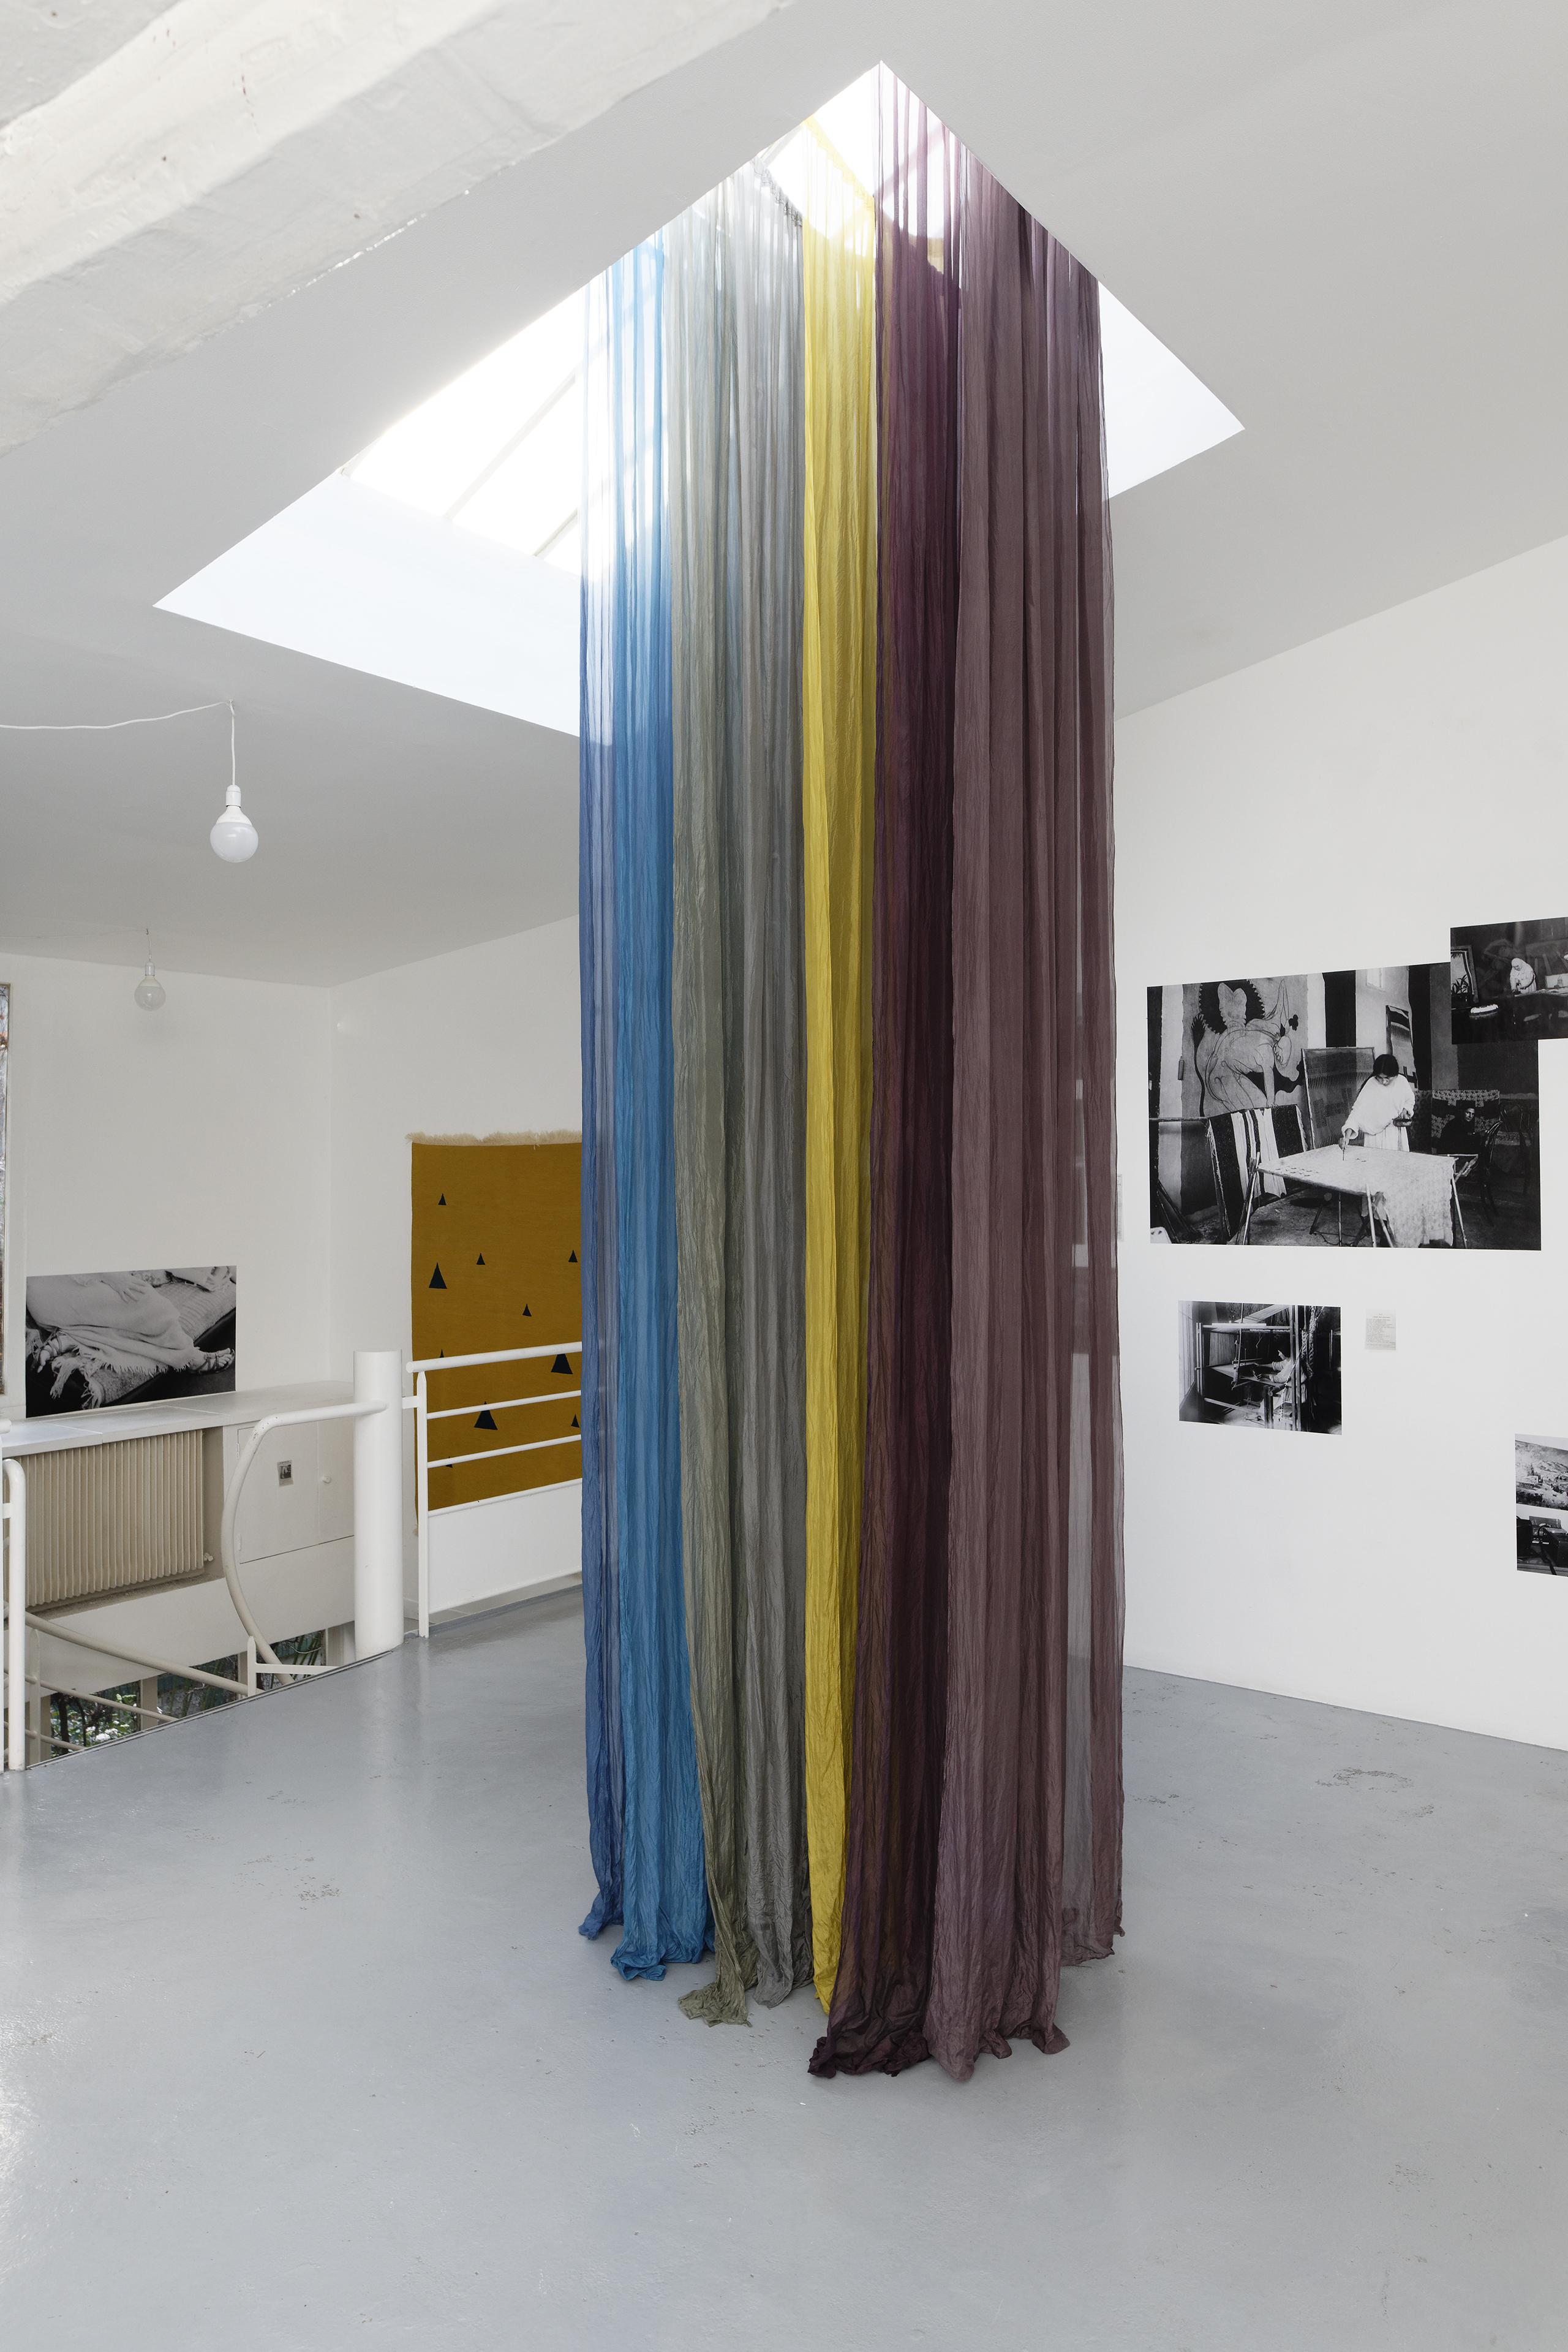 Vue de l'exposition« Akademia : Performing Life », Villa Vassilieff, Paris, 2018. Barbara Gaile, La Verticale, 2017 et des pho­to­gra­phies pro­ve­nant de la Duncan Collection. Courtesy : Barbara Gaile and Duncan Collection. Image : Aurélien Mole